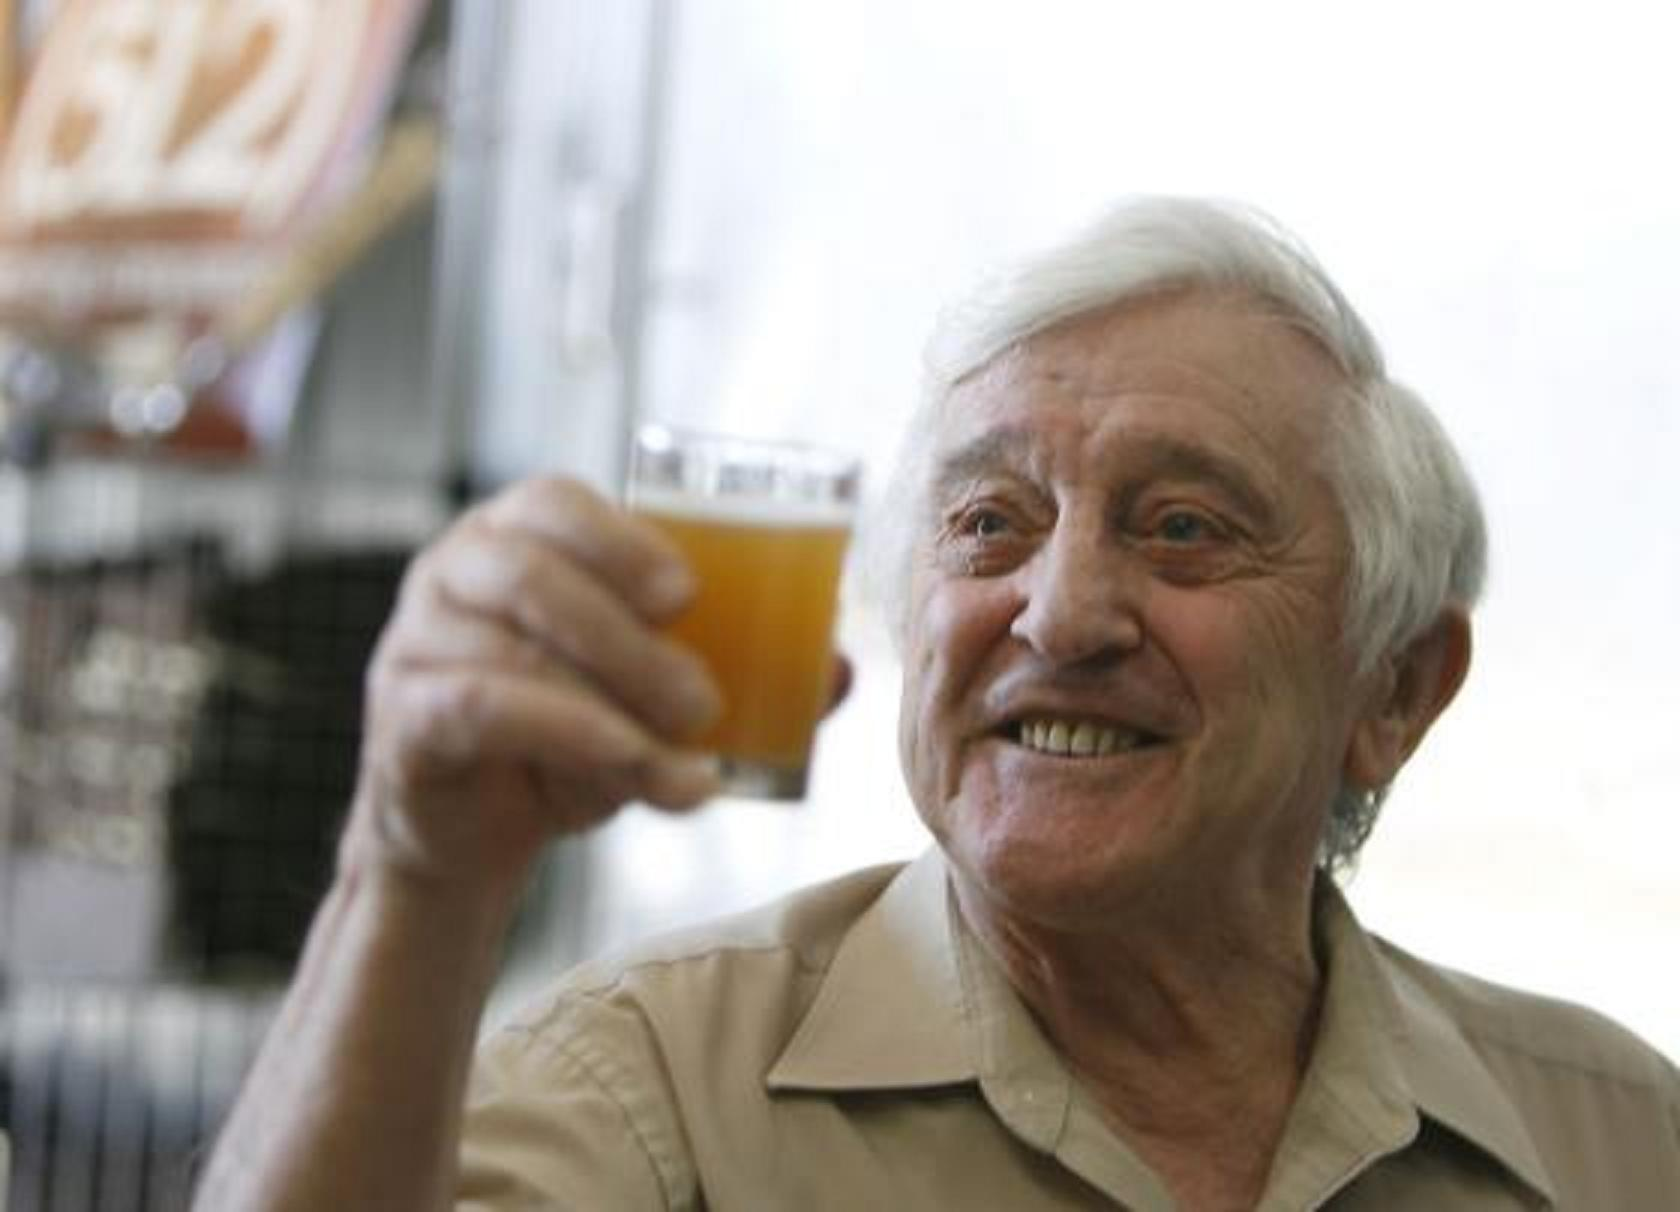 "AMERICAN-STATESMAN: Rodolfo Gonzalez - 10/02/08- World famous Belgium brewer, Pierre Celis smiles and gives a toast as he samples ""Wit"" brewed by Austin's 512 Brewery in honor of Celis' famous Celis White during a visit to 512 Brewing in Austin, Texas on Thursday, October 02, 2008."